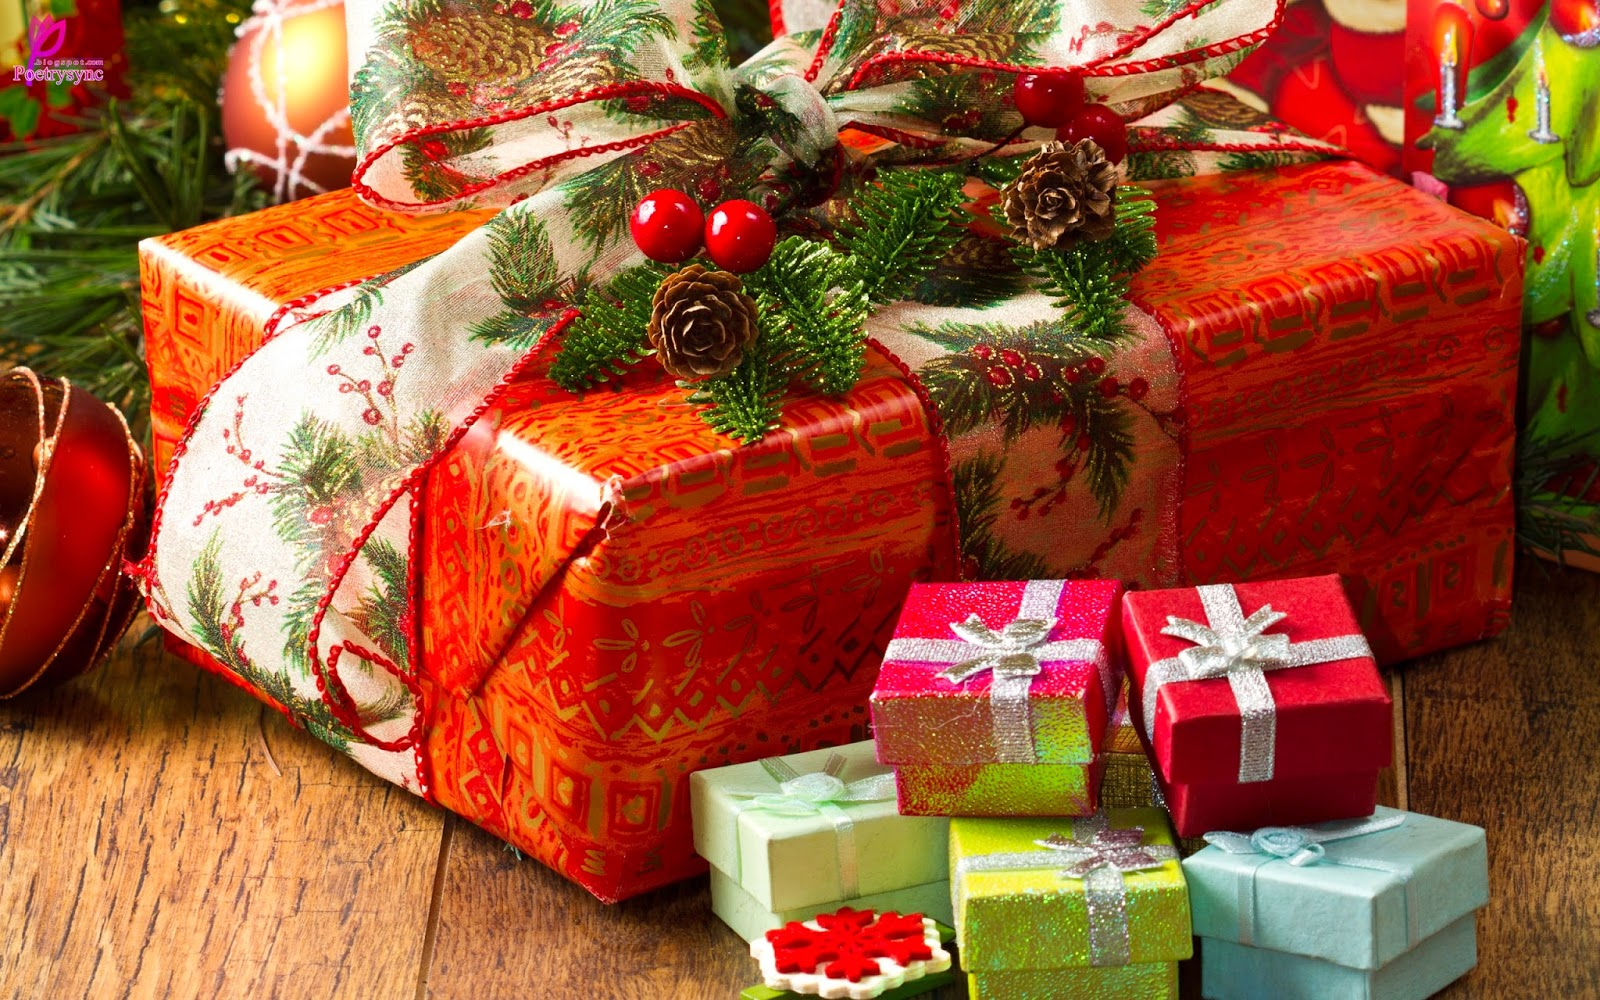 Attractive homemade merry christmas gift ideas 2017 for dad and christmas day gift idea packing 2017 negle Choice Image